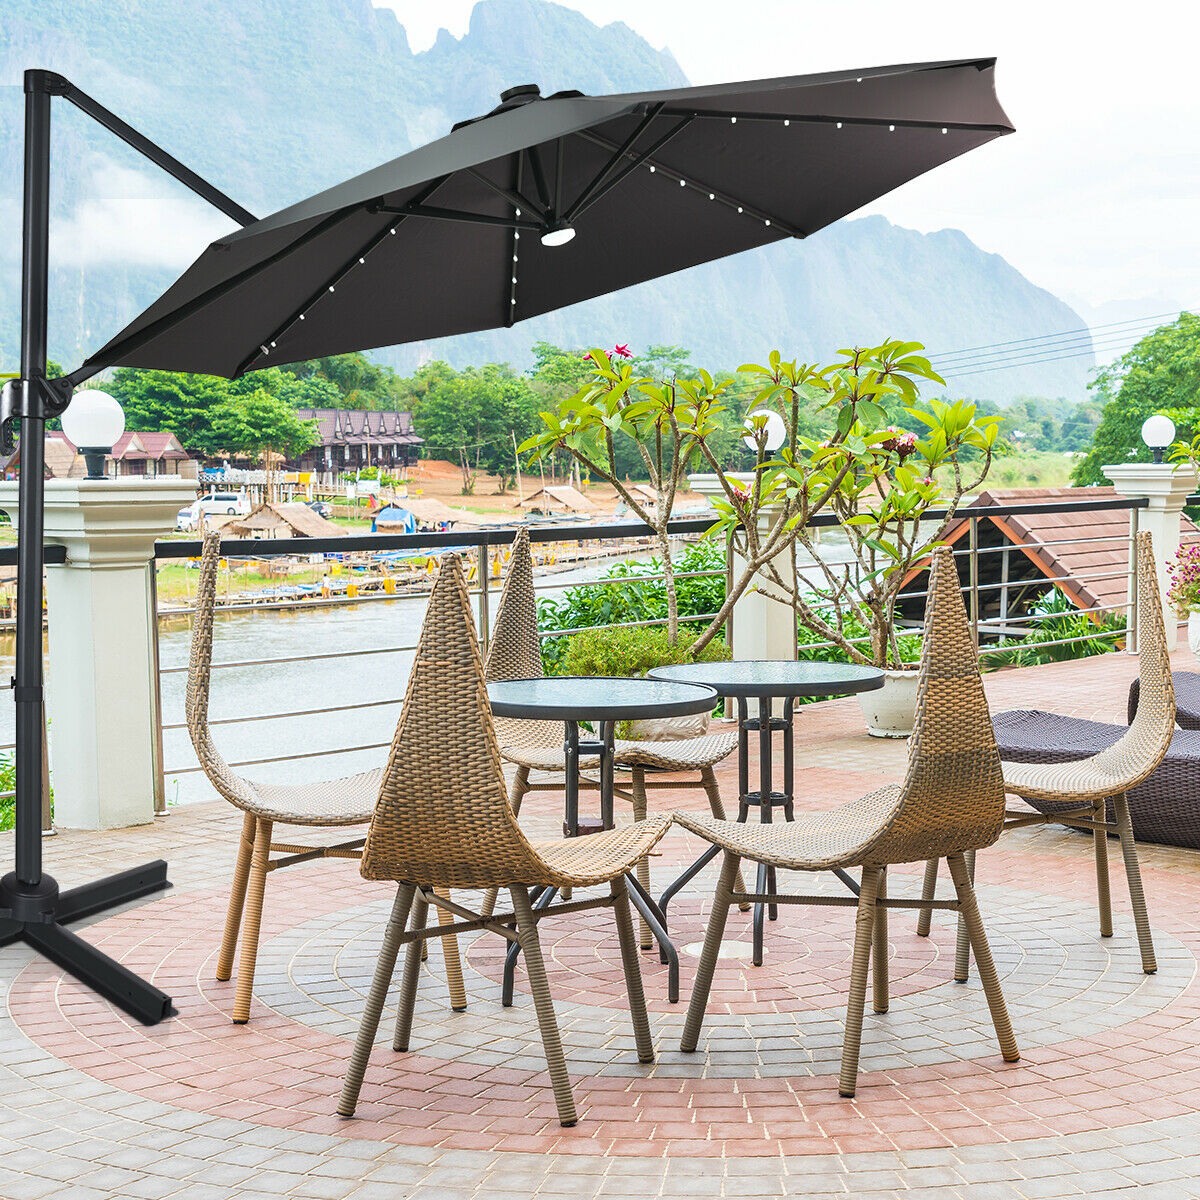 Outdoor Market Umbrella with Cross Base and Cover Tan Tangkula 10 ft Solar LED Patio Cantilever Offset Umbrella with 360 Degree Rotation Outdoor Umbrella with Center Light